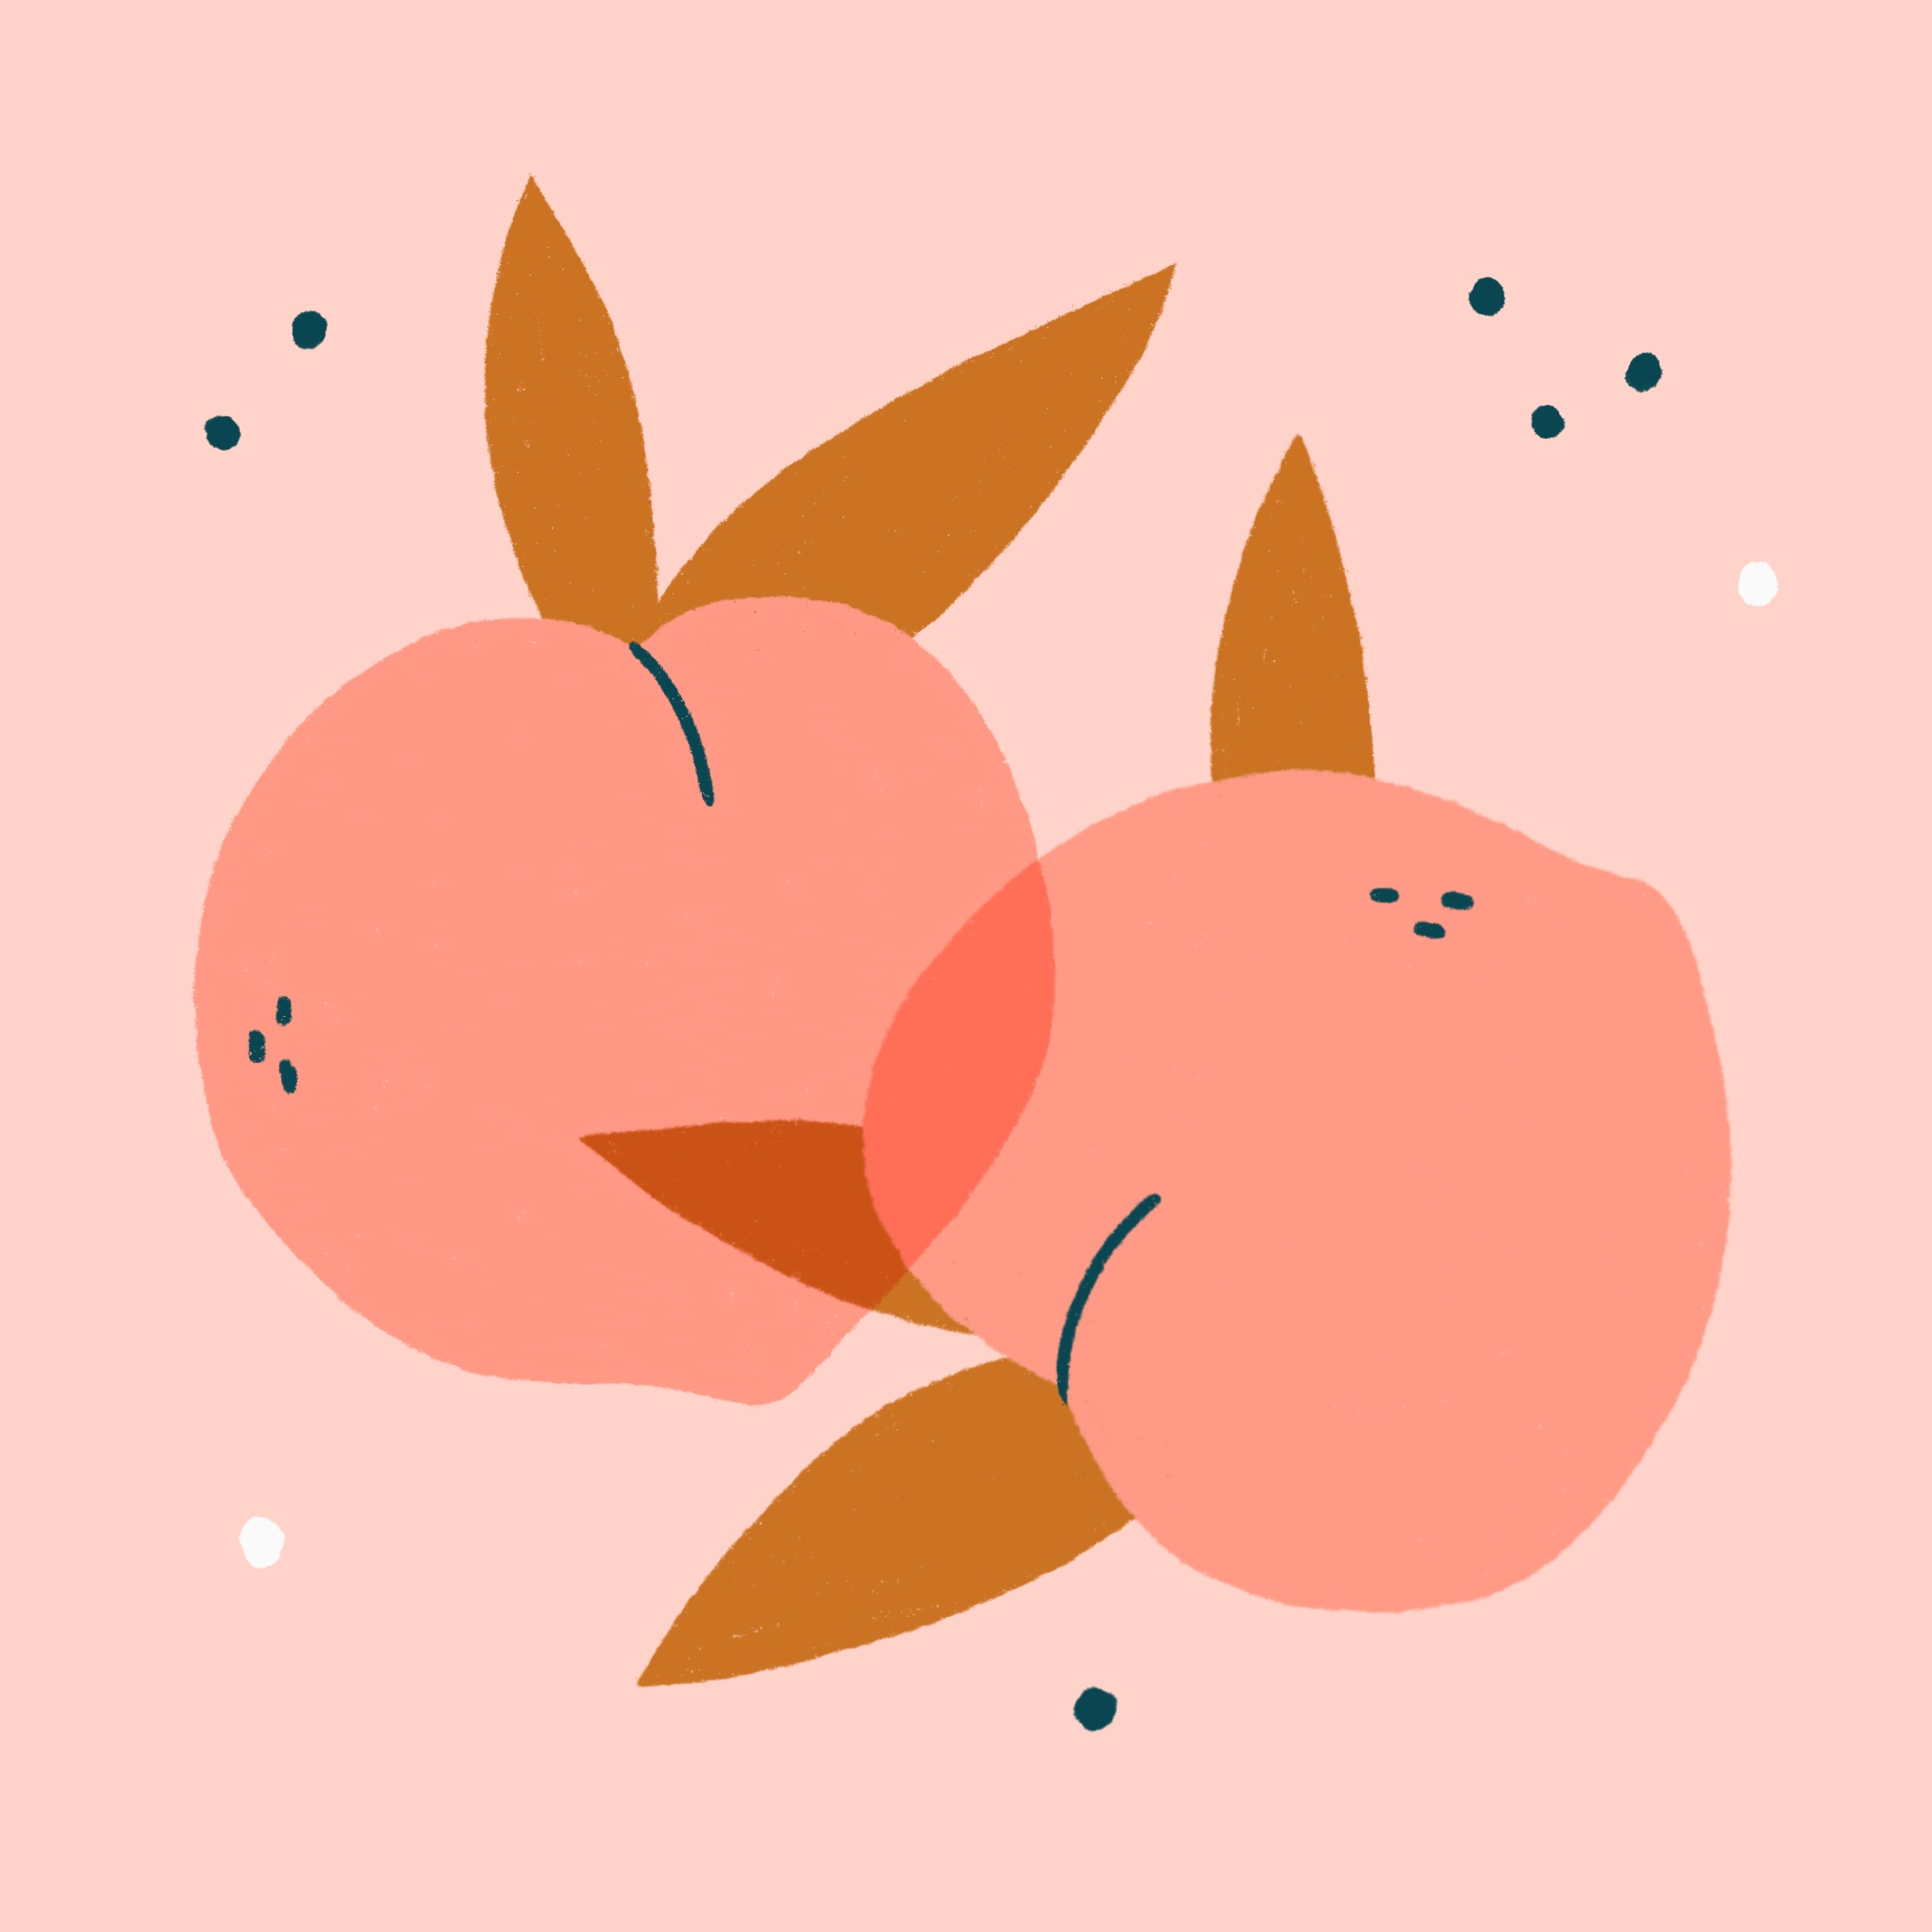 An illustration of two peaches